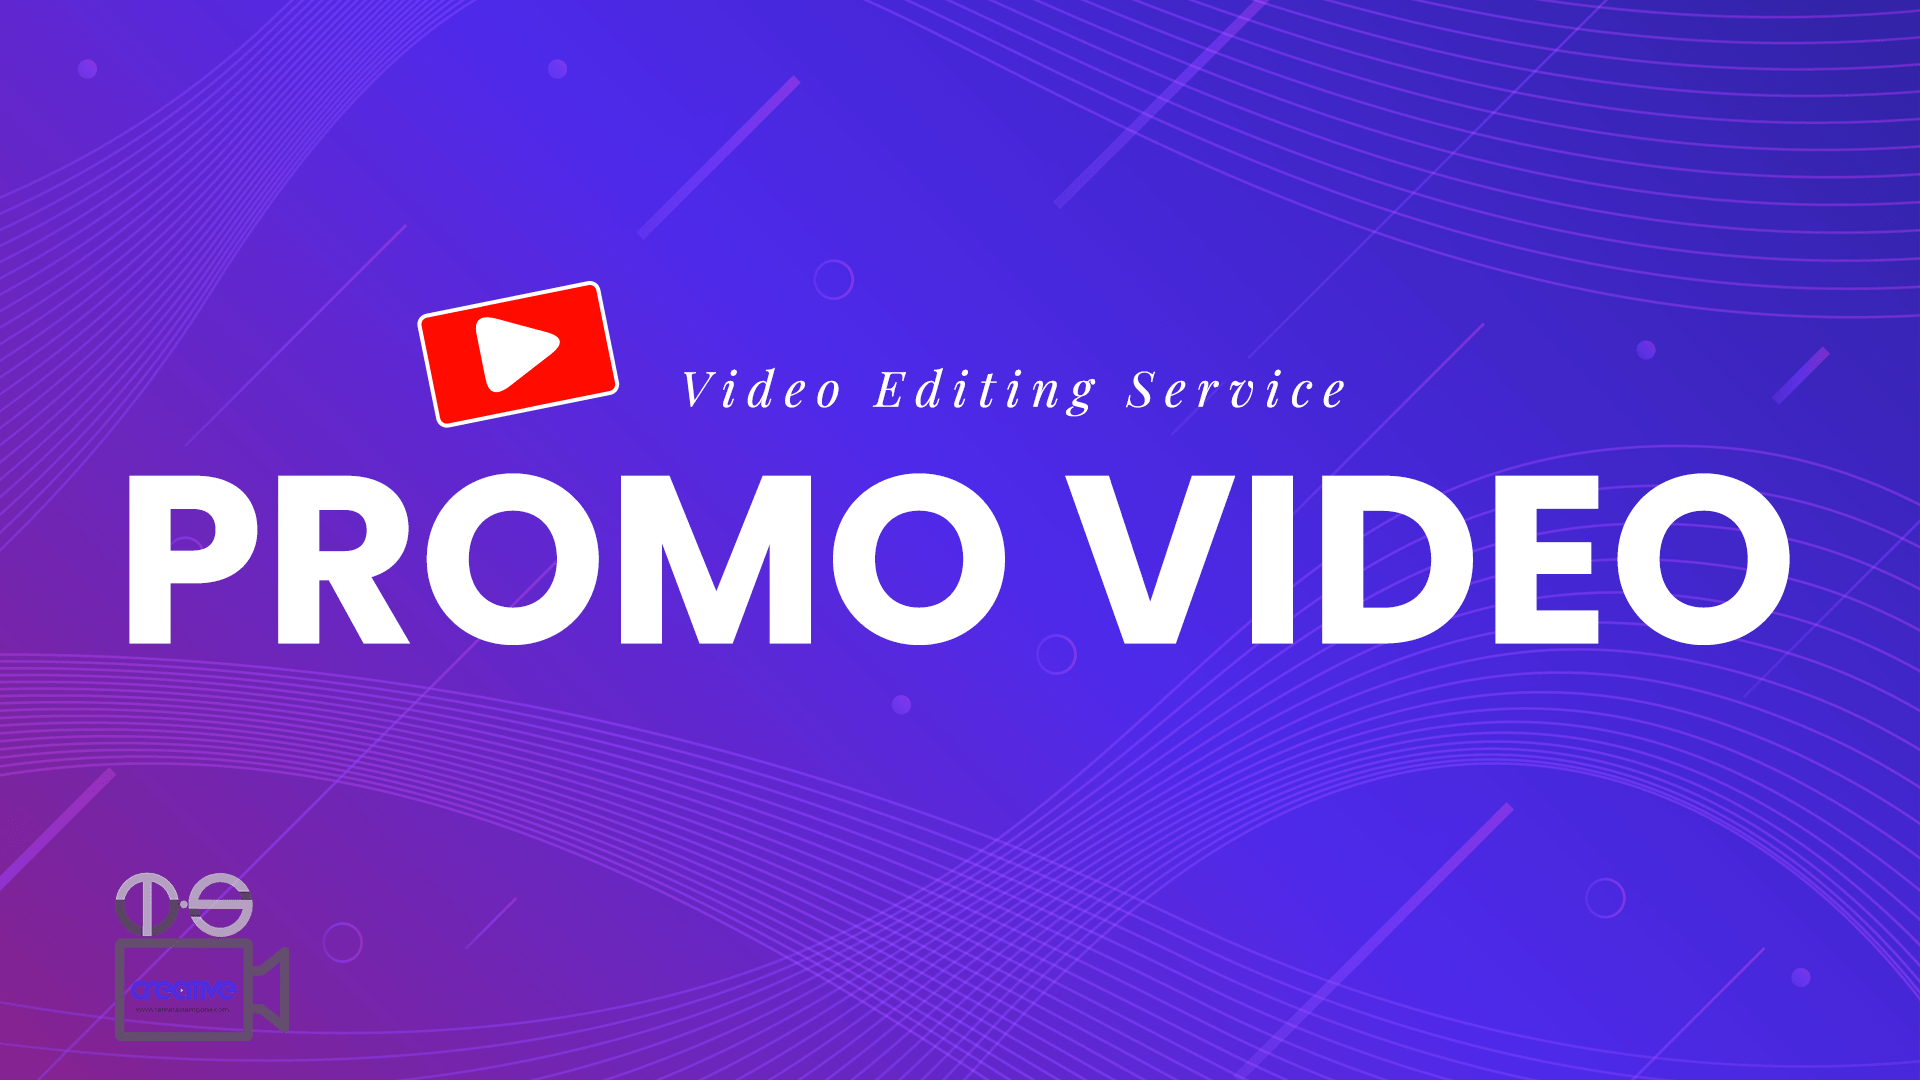 business video marketing Video Editing Services